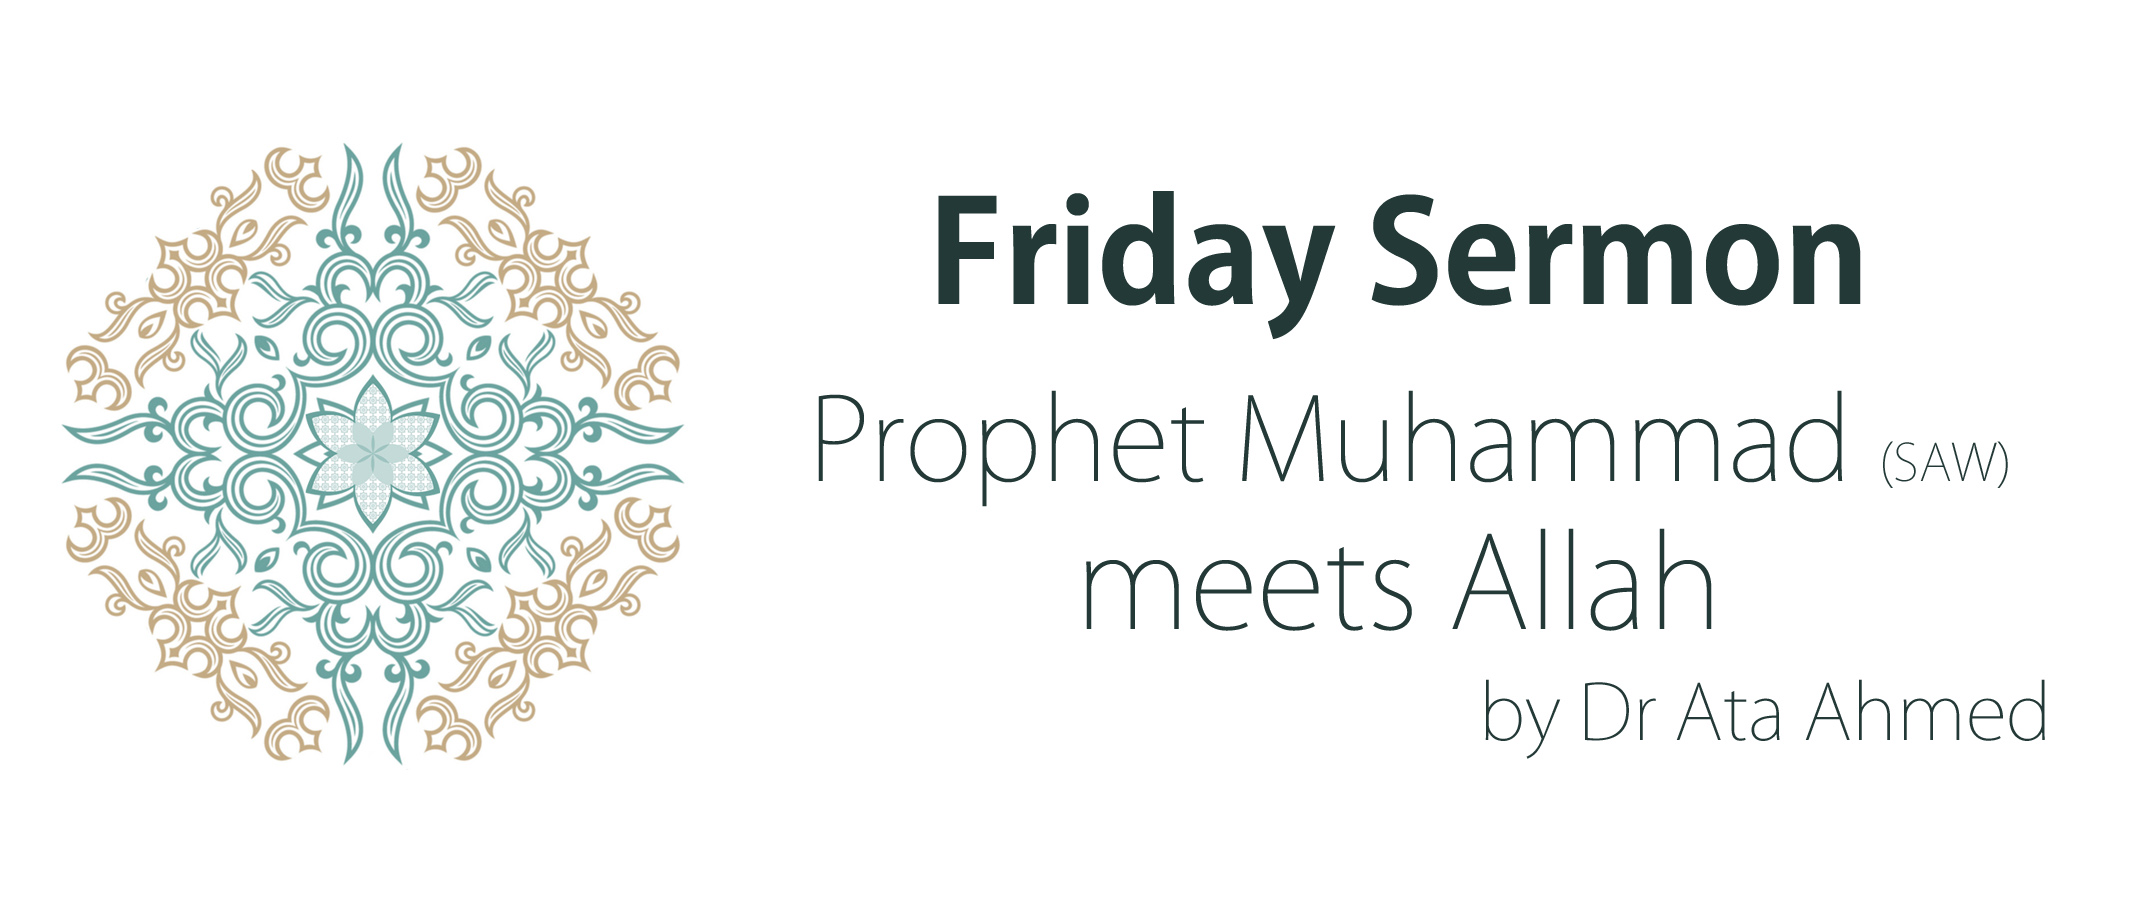 Friday sermon: Prophet Muhammad (SAW) meets Allah